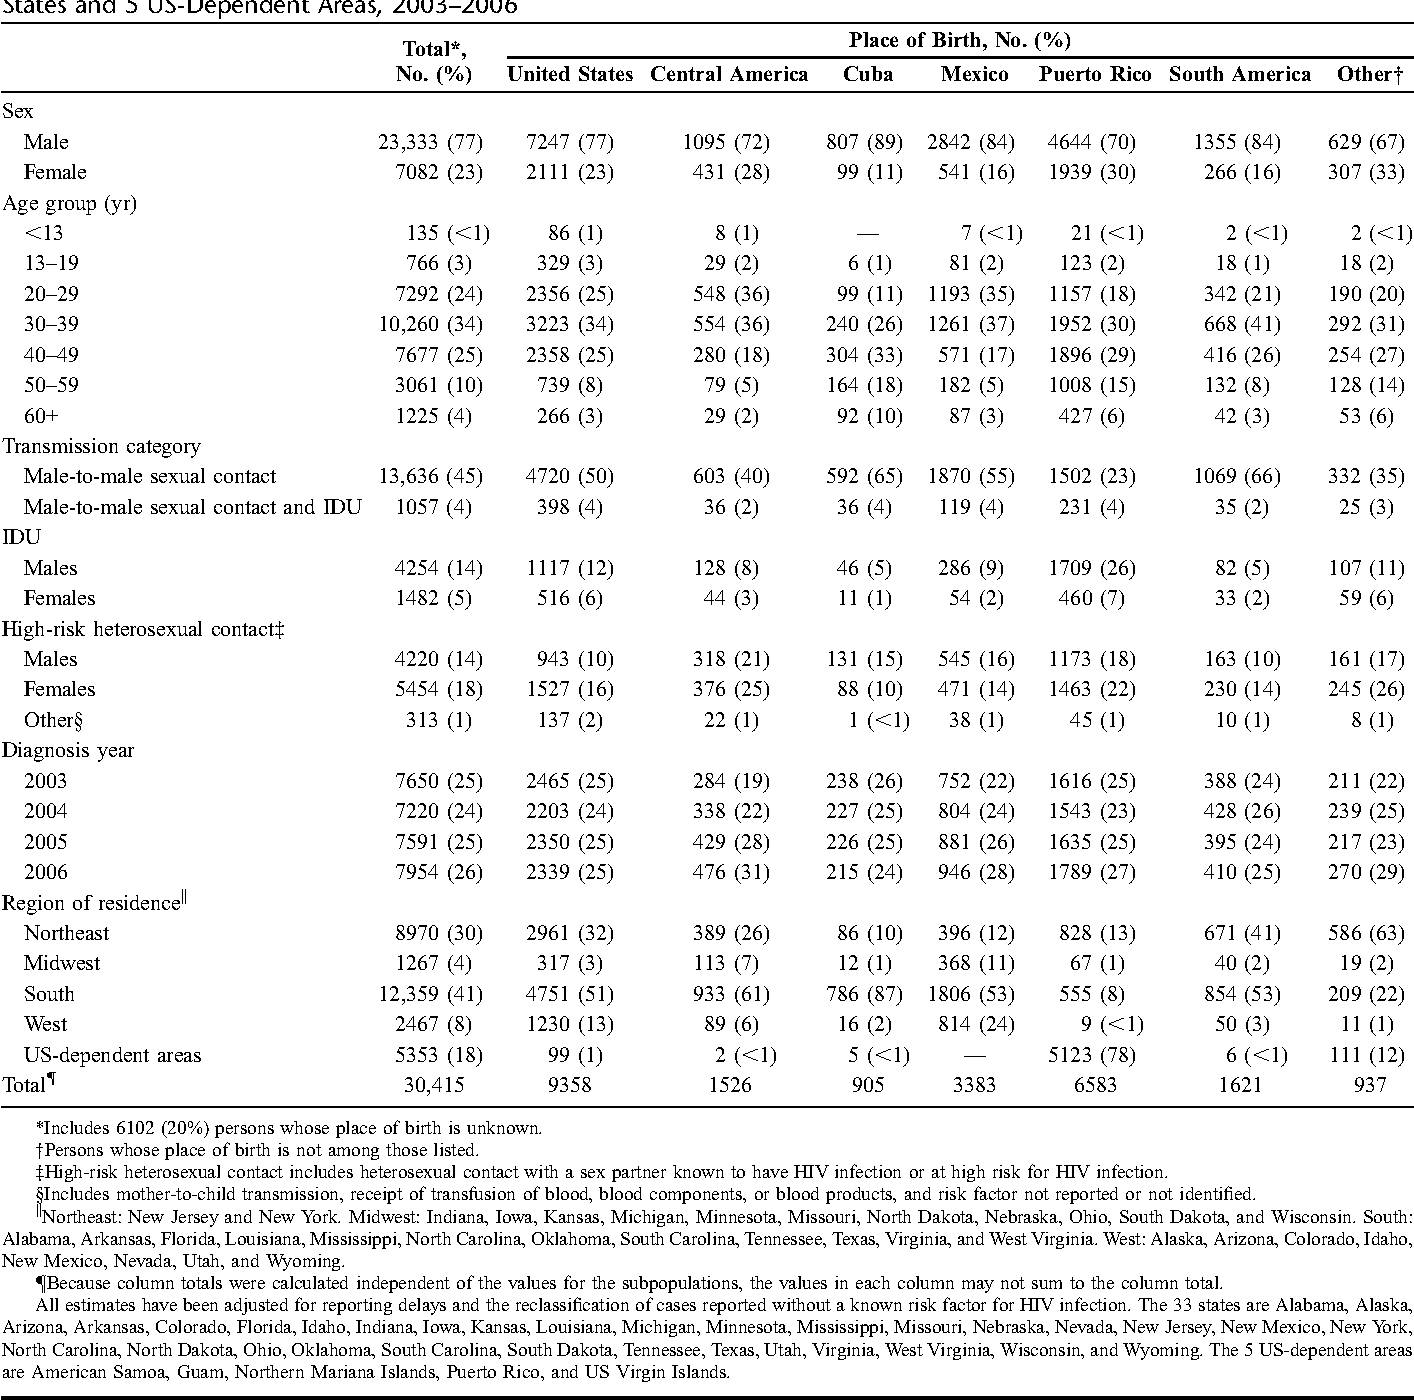 TABLE 1. Estimated Number and Percentage of Hispanics With HIV/AIDS, by Place of Birth and Selected Characteristics—33 States and 5 US-Dependent Areas, 2003–2006